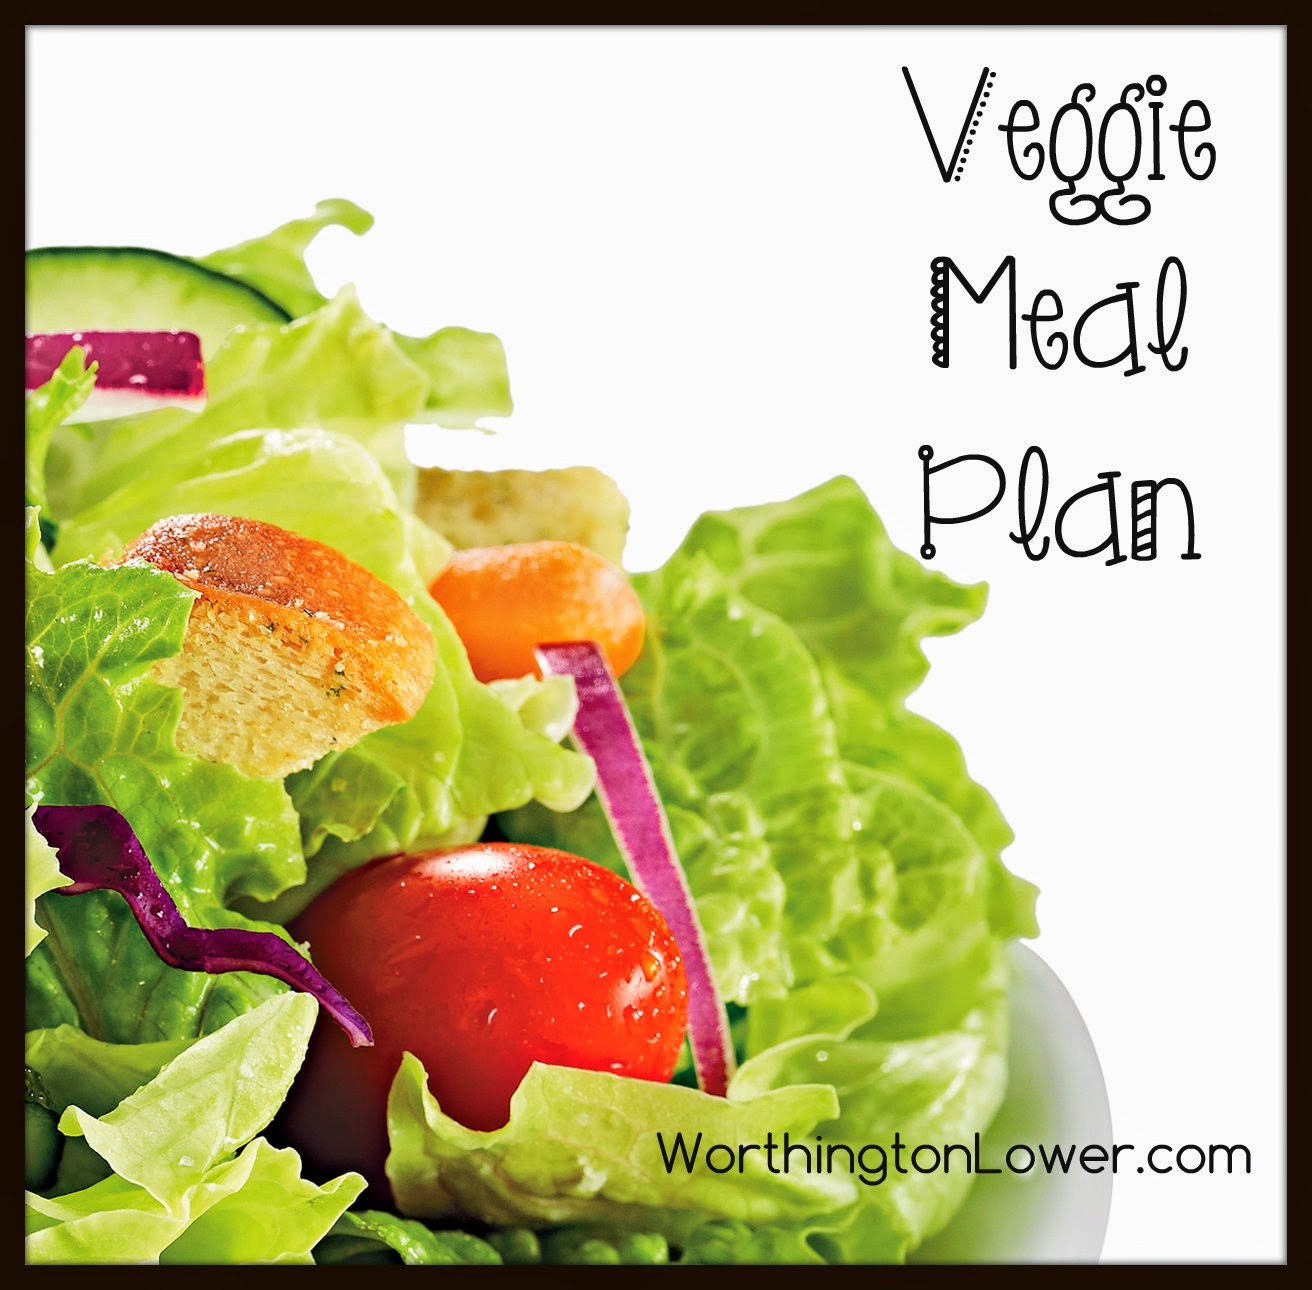 Veggie Meal Plan 6/1/14  //  WorthingtonLower.com